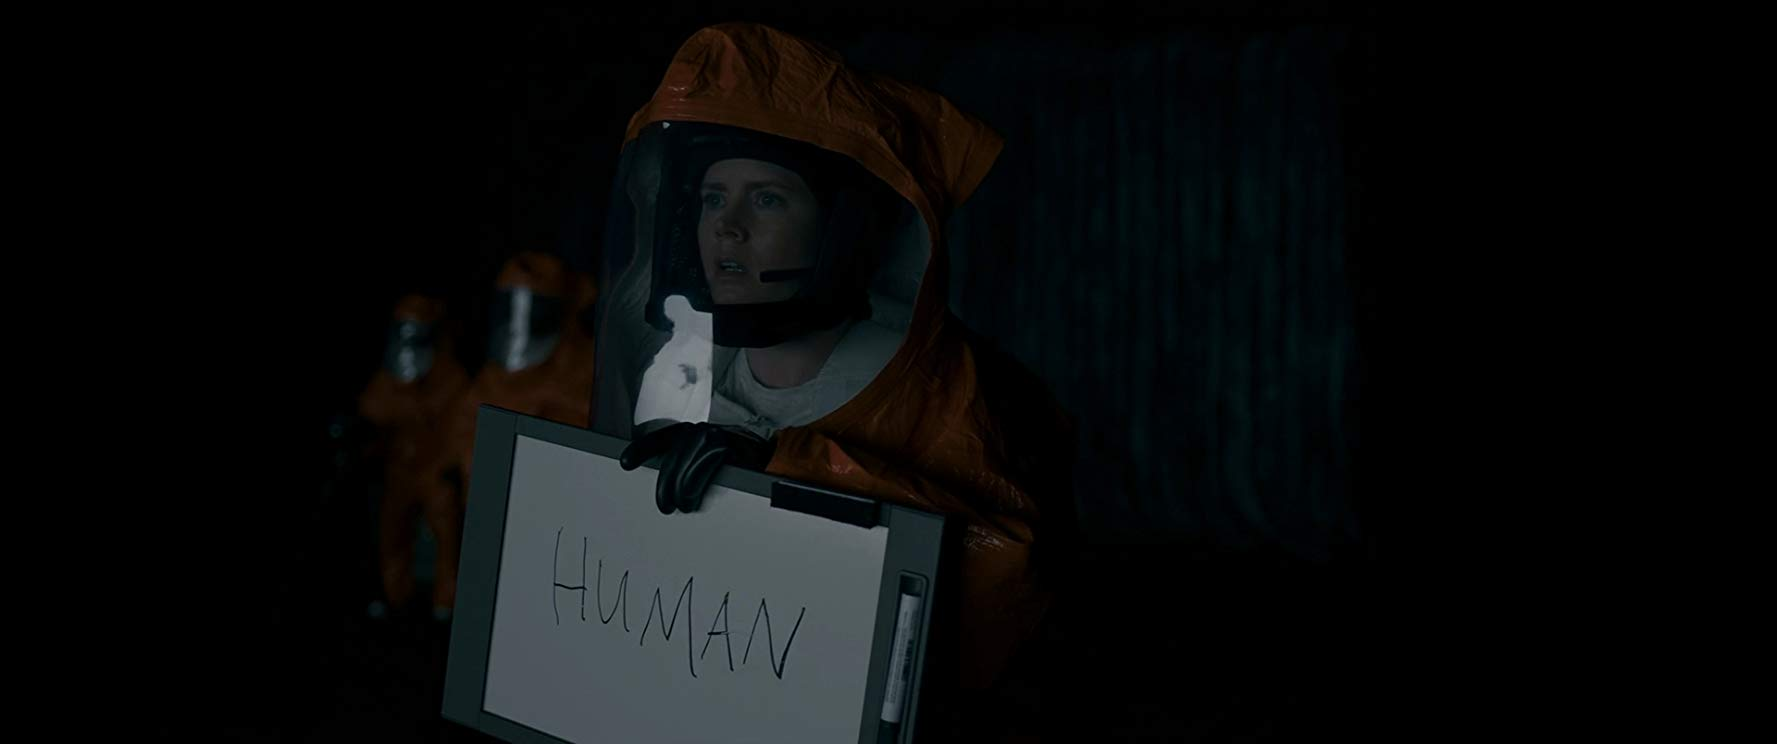 Still from movie Arrival (2016)